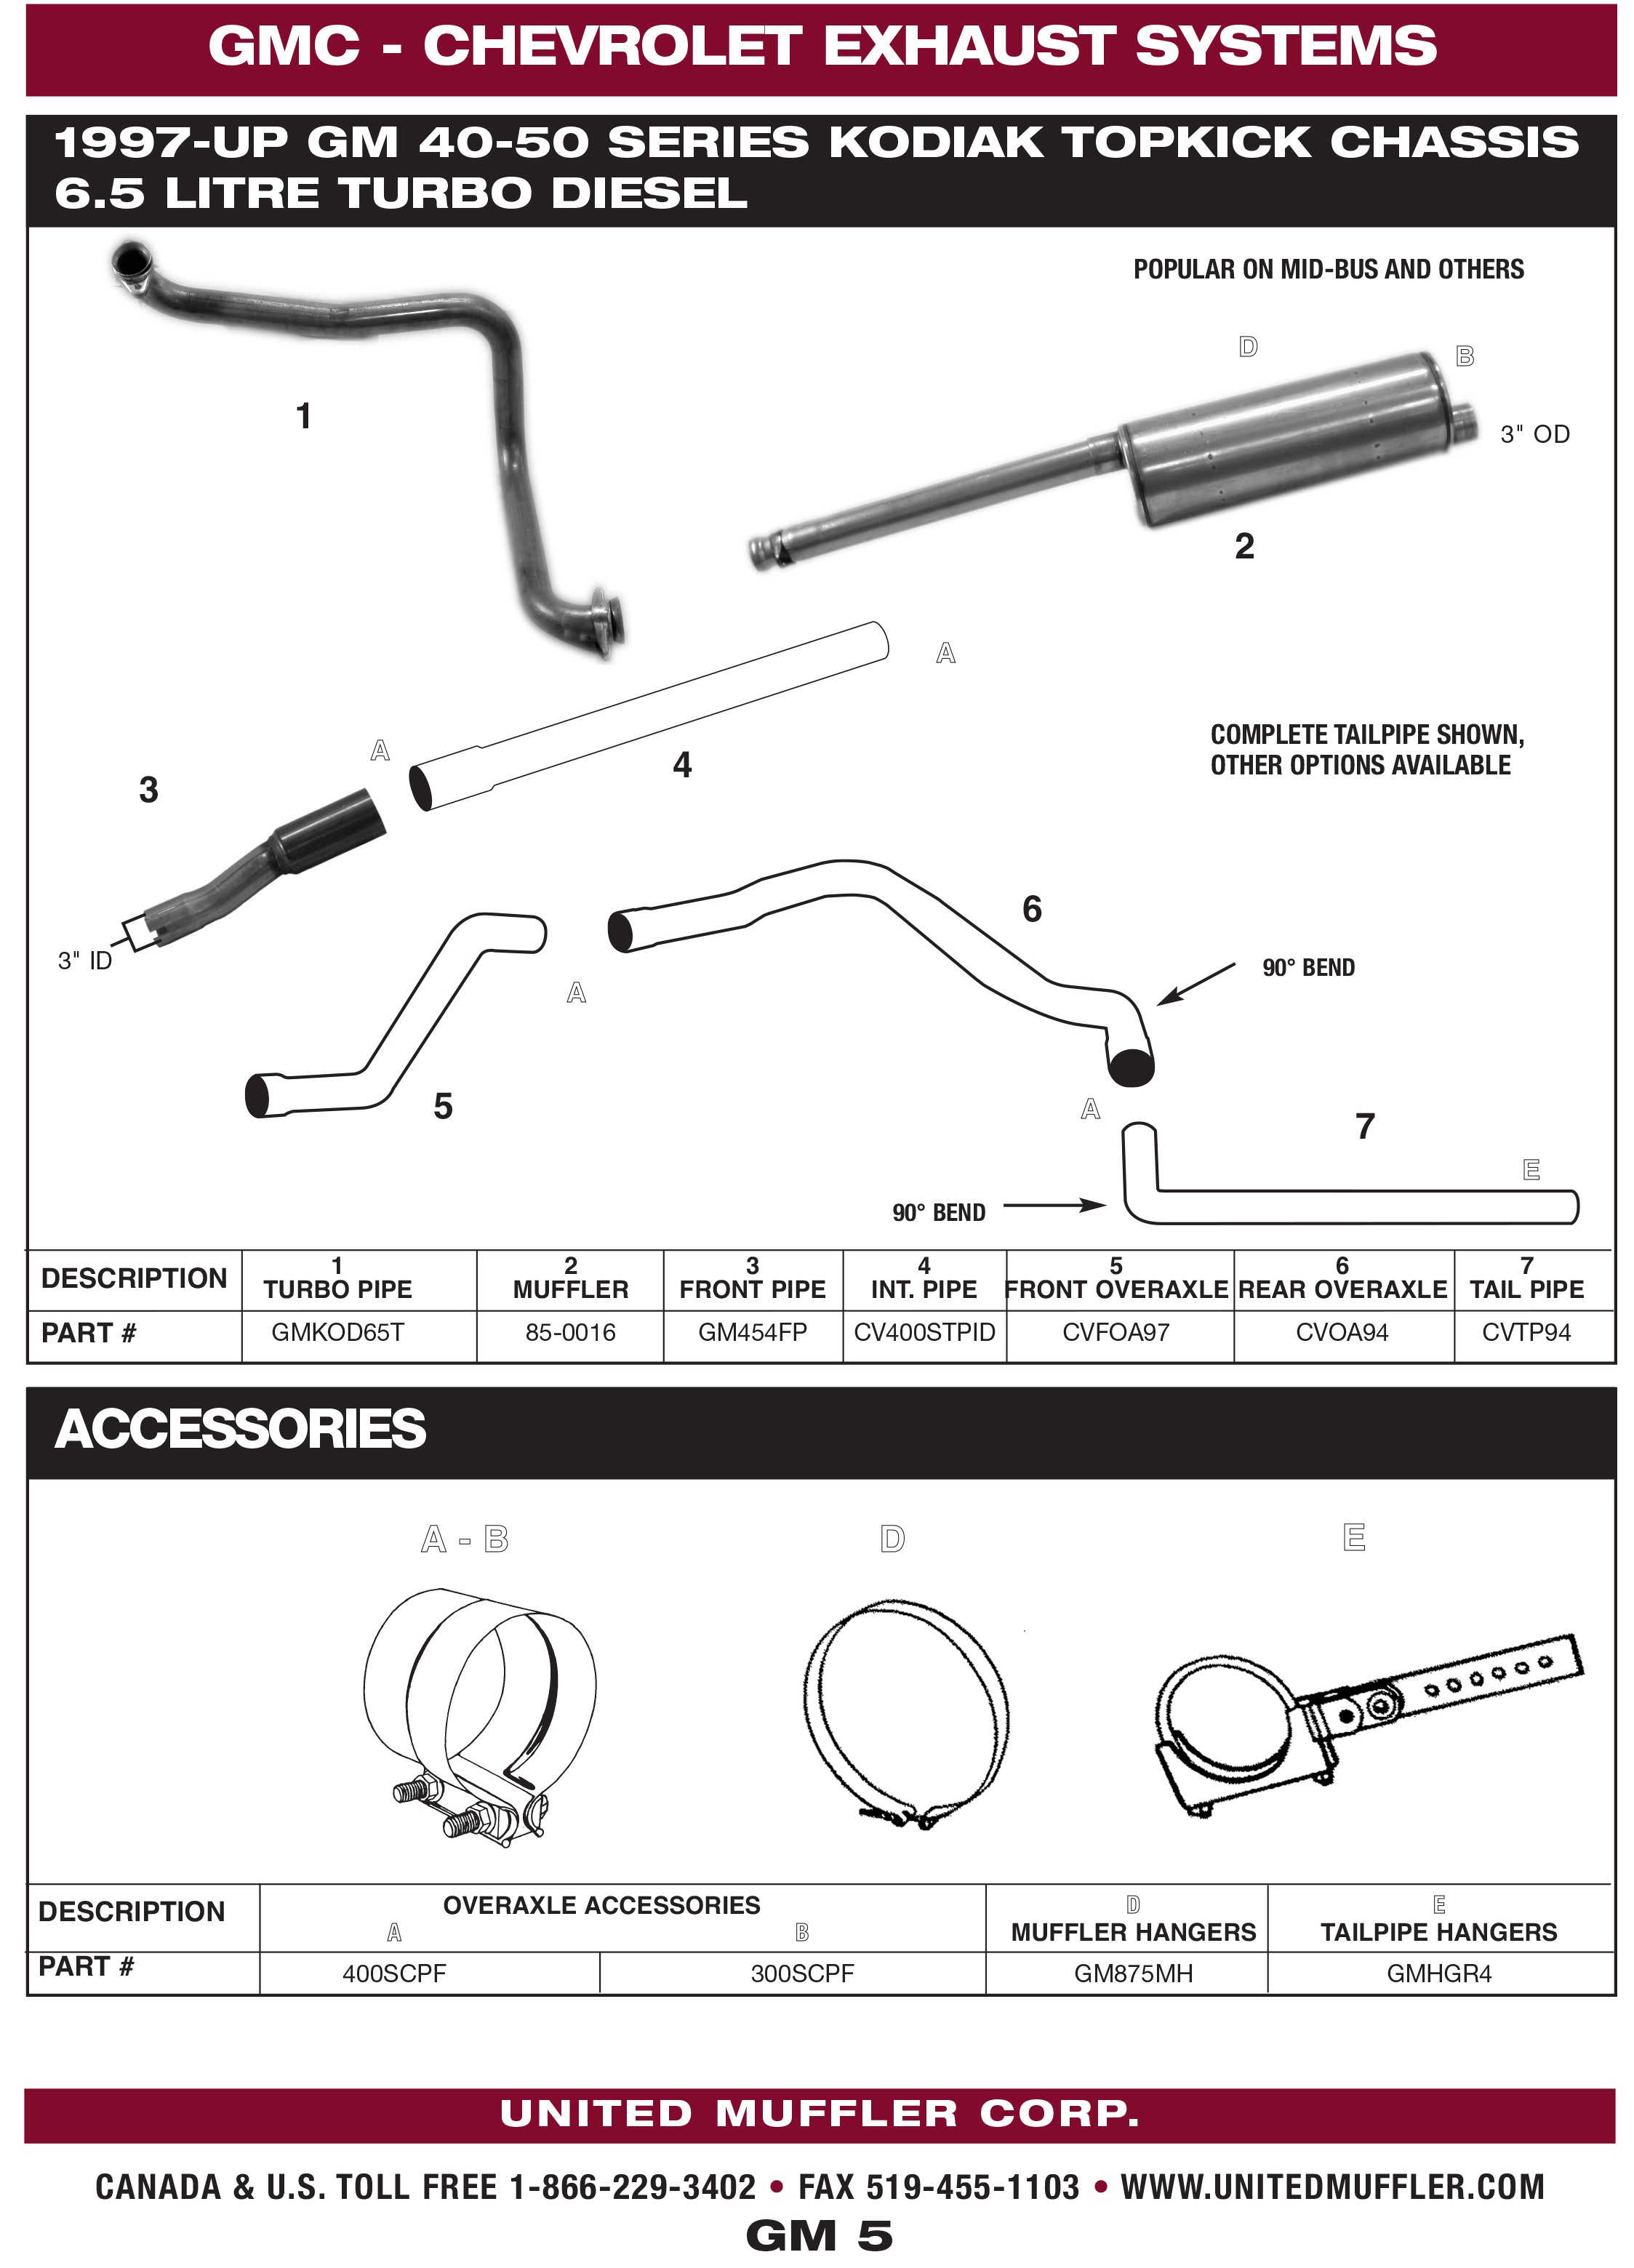 Gm Parts Diagrams with Part Numbers Chev Gmc – My Wiring DIagram